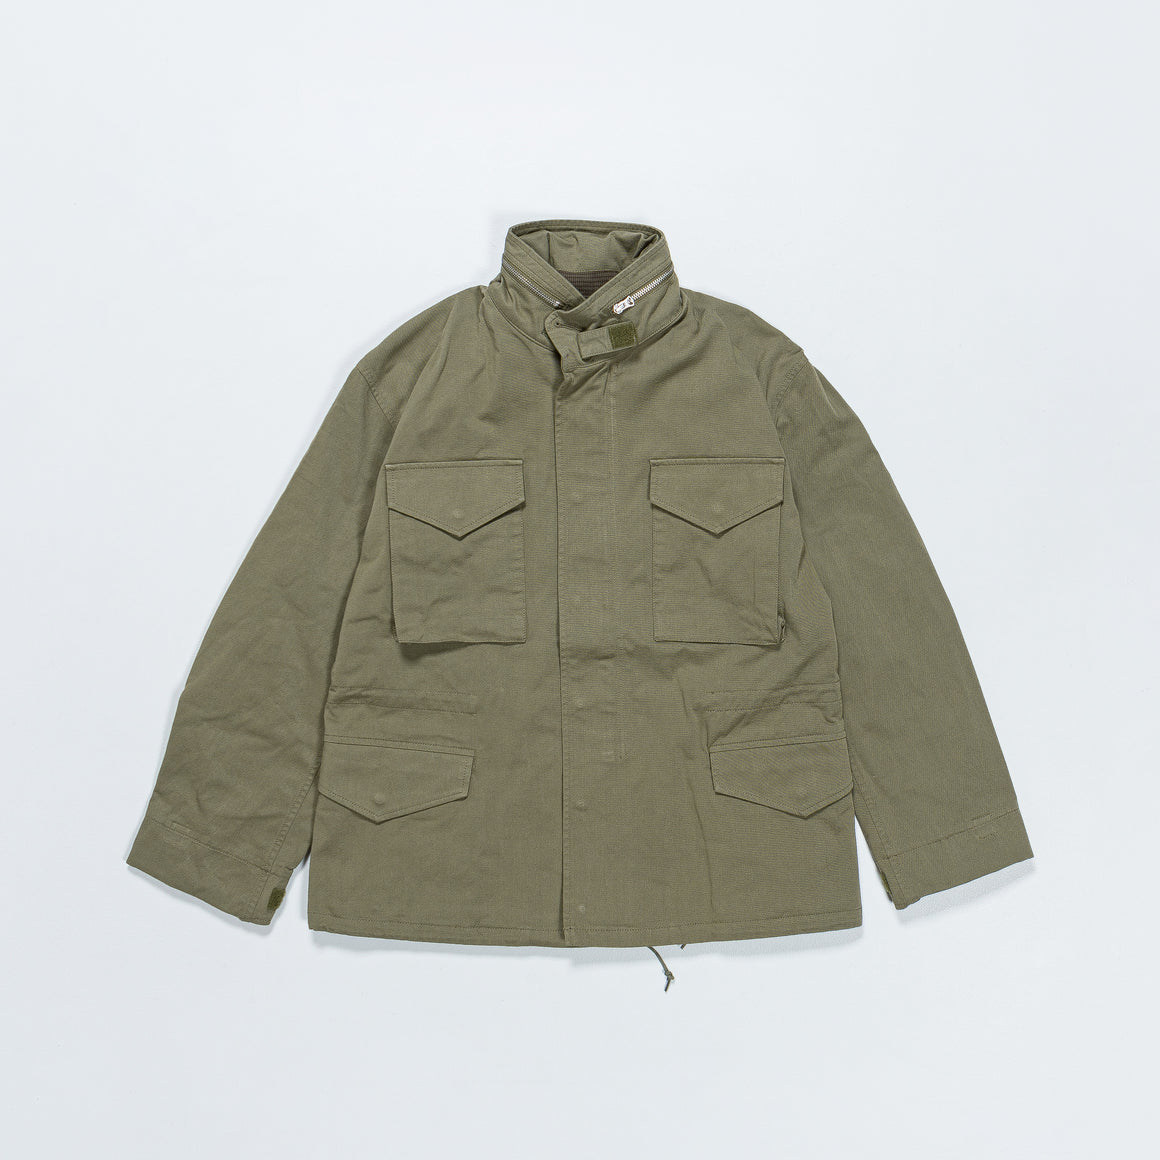 Beams Plus - M-65 Type - Olive Hollow Yarn Twill - Up There